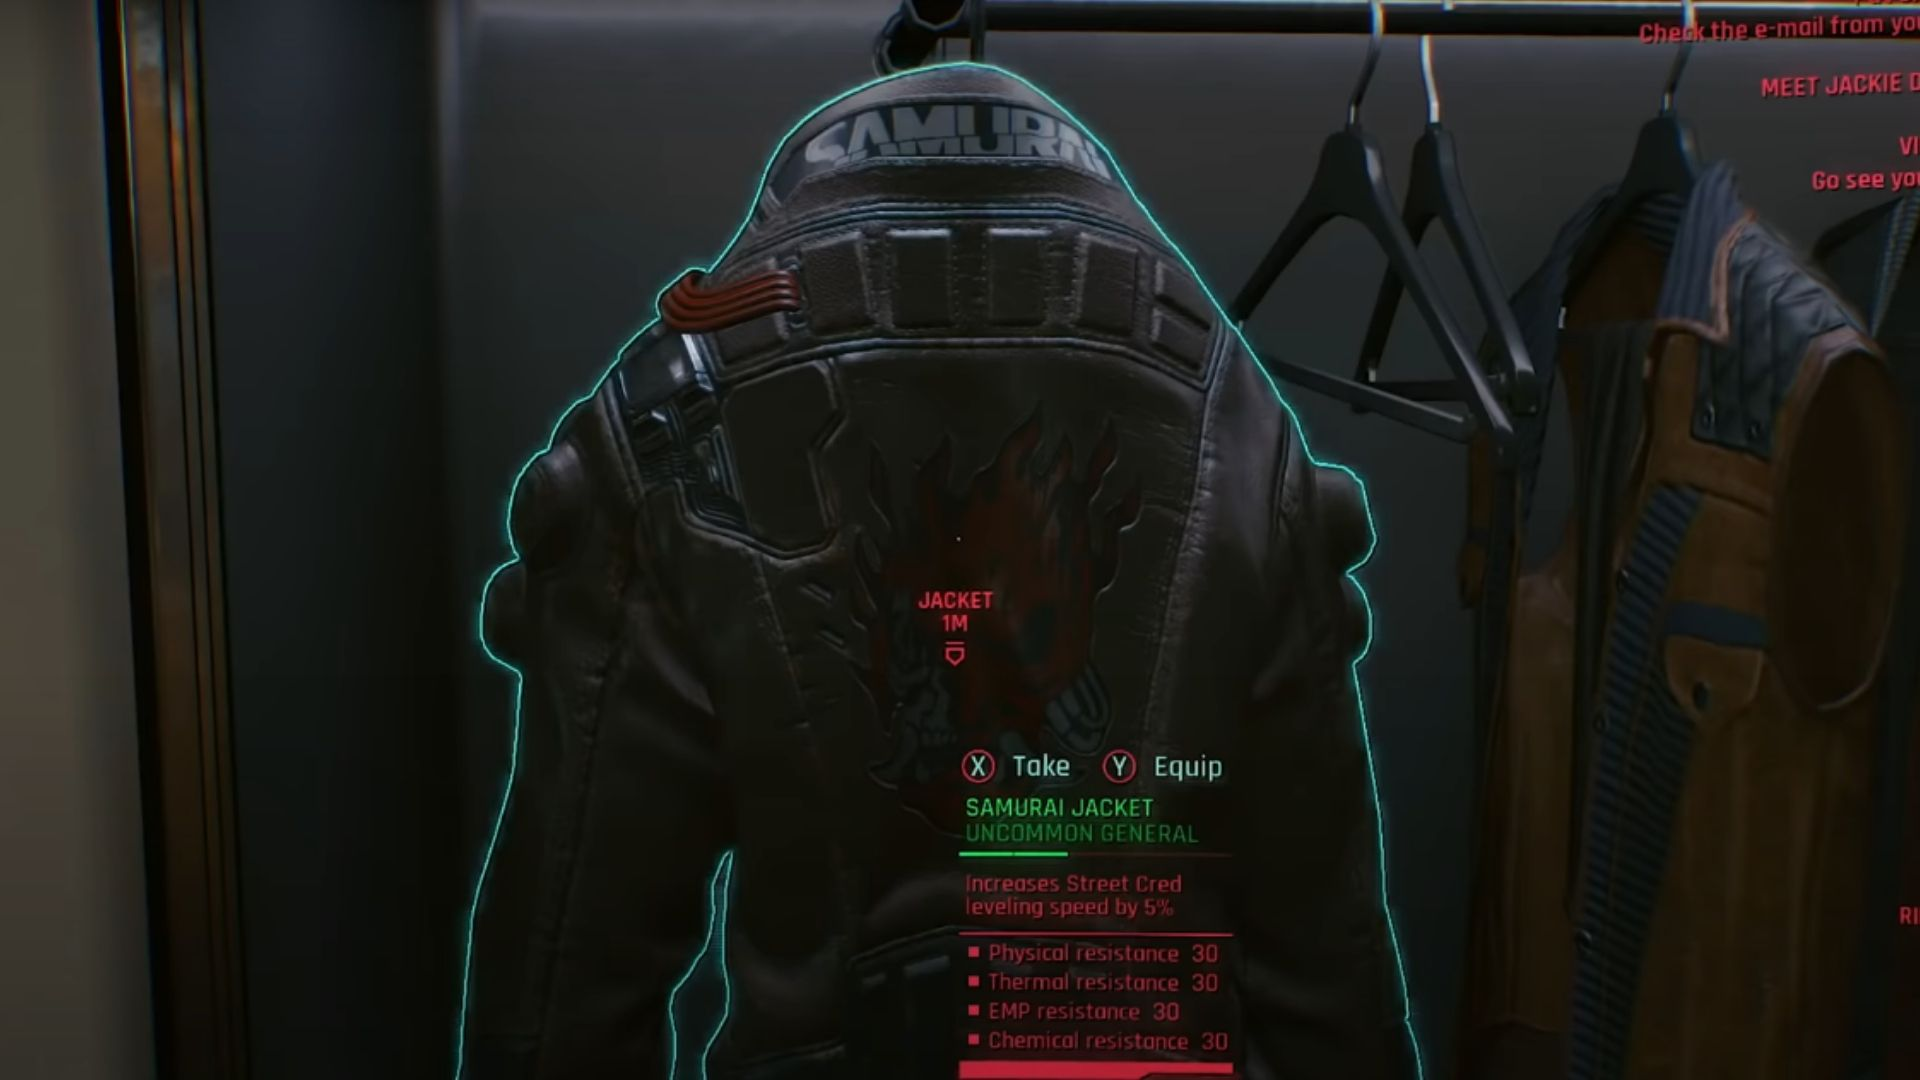 V's jacket from the Cyberpunk E3 2018 trailer, showing that it increasing street cred